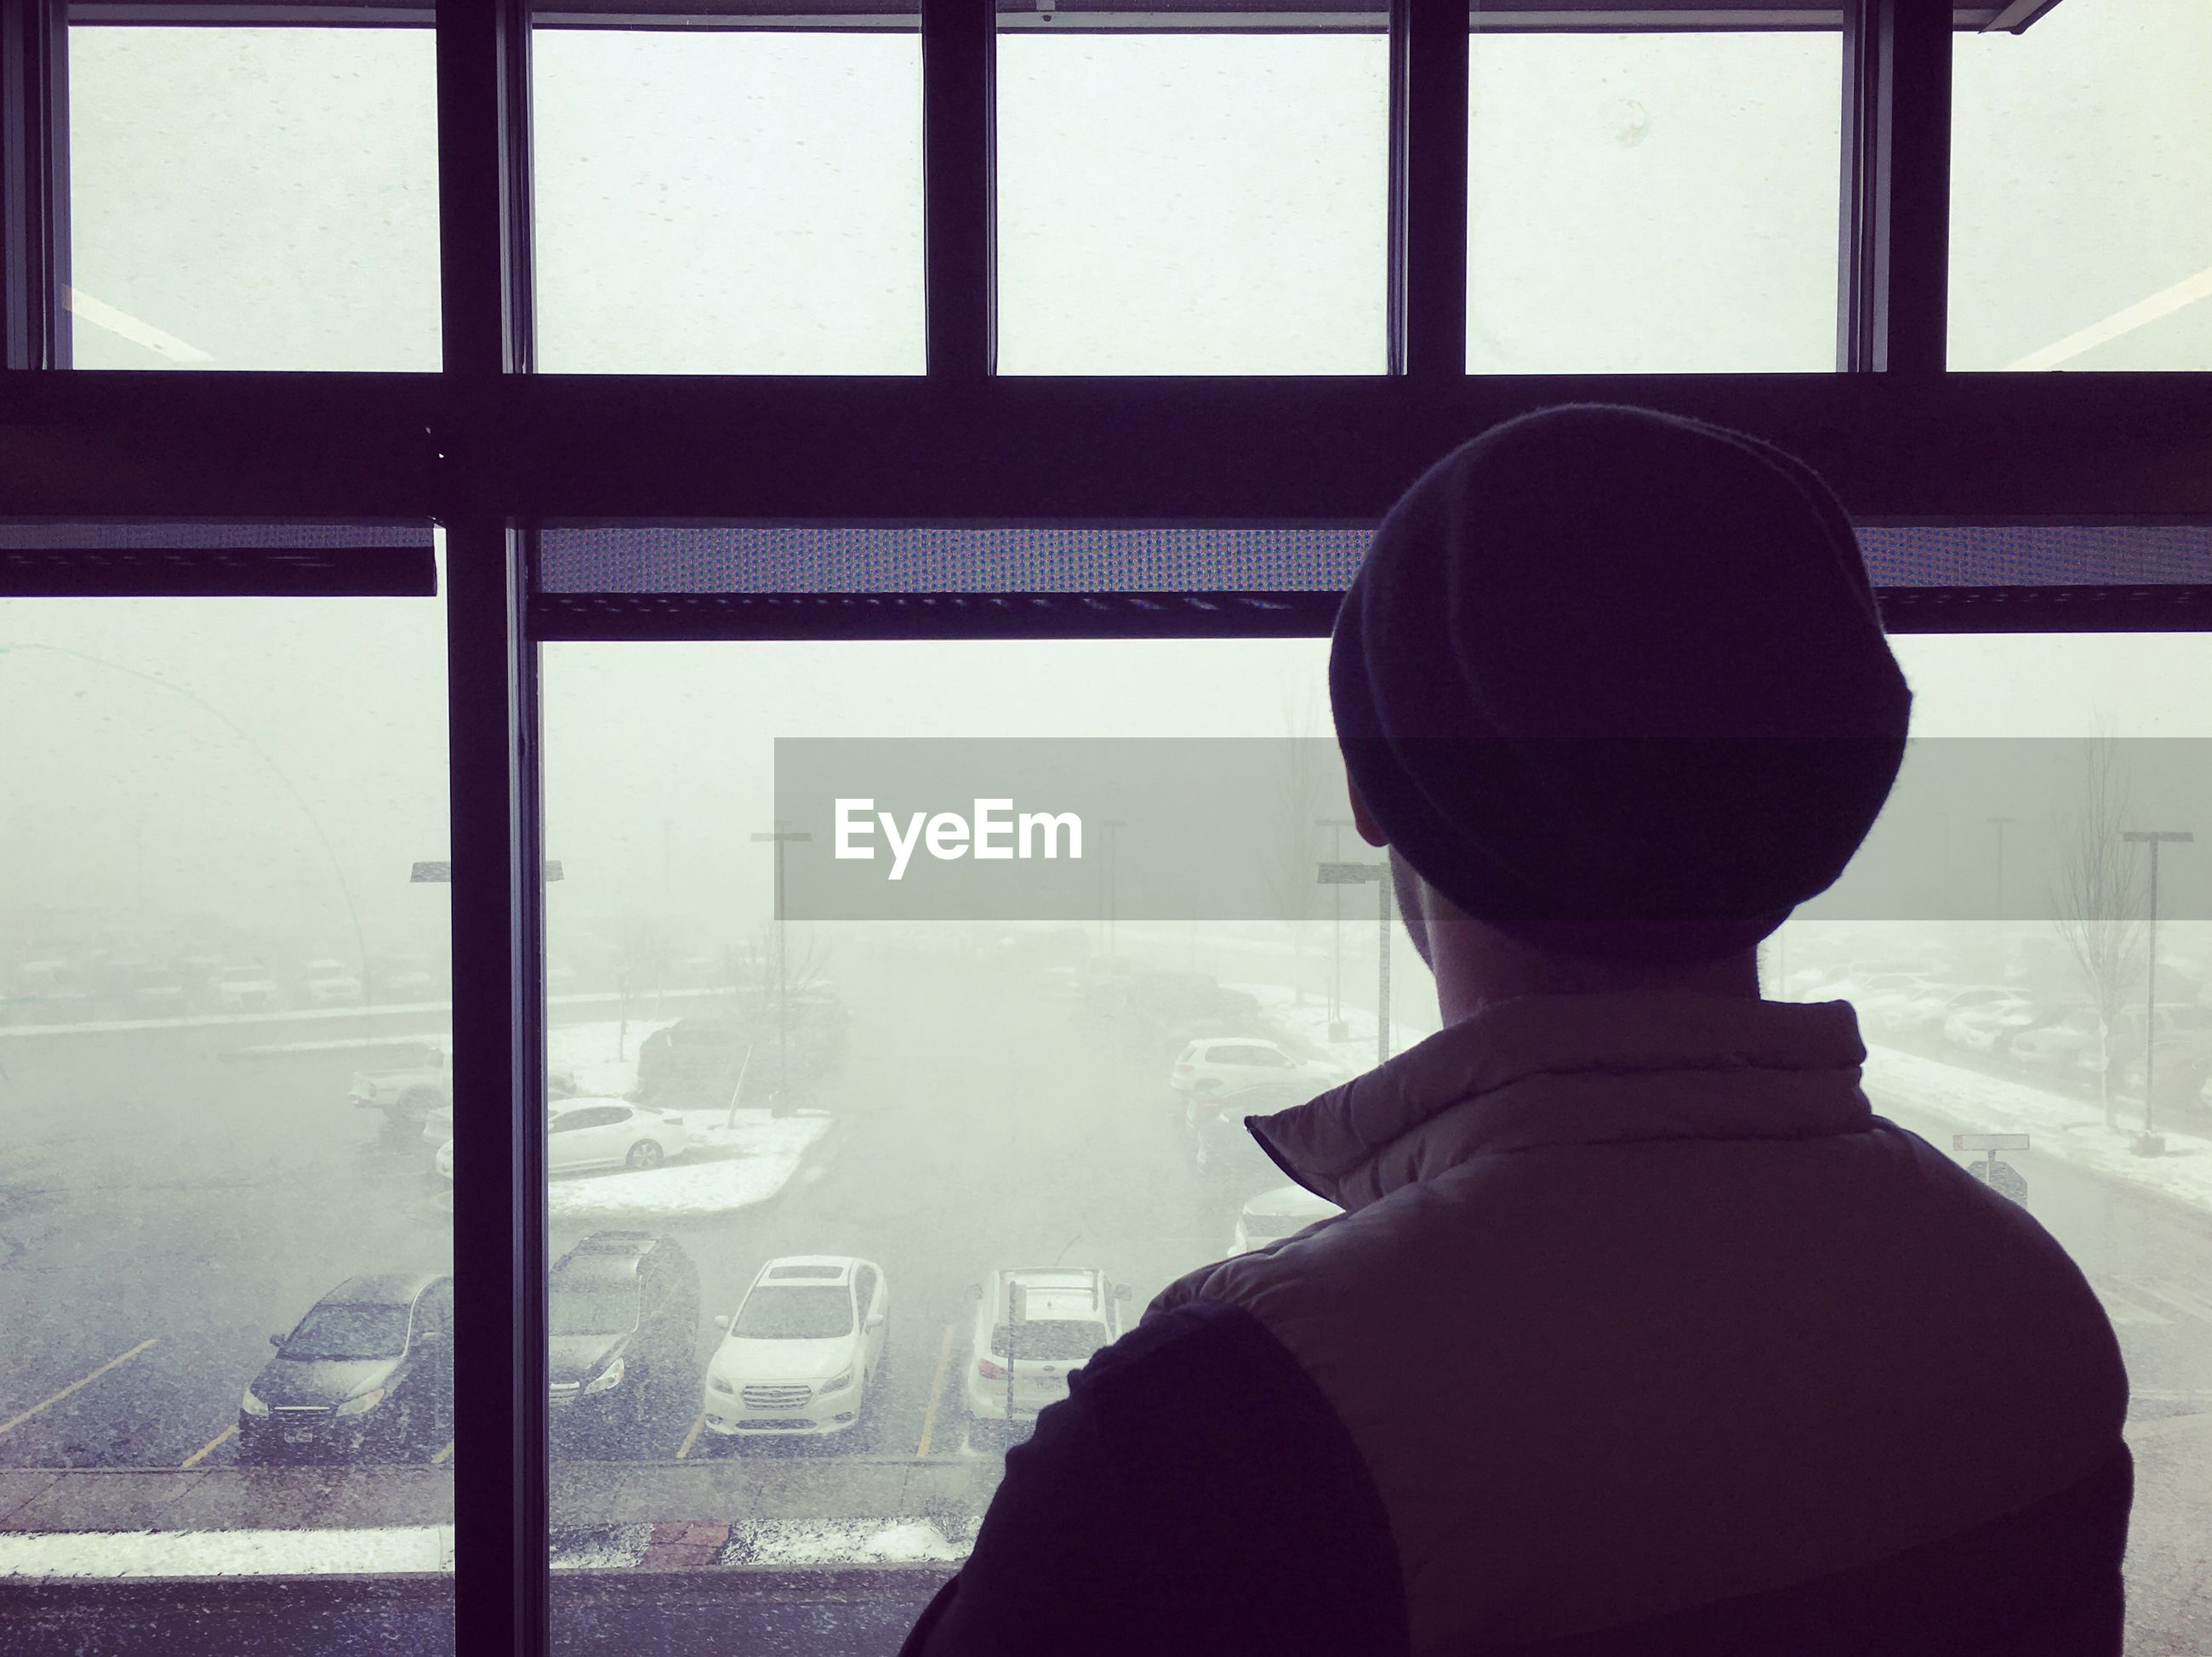 window, glass - material, real people, transparent, one person, headshot, rear view, looking, lifestyles, indoors, day, portrait, men, transportation, mode of transportation, public transportation, airplane, looking through window, standing, looking at view